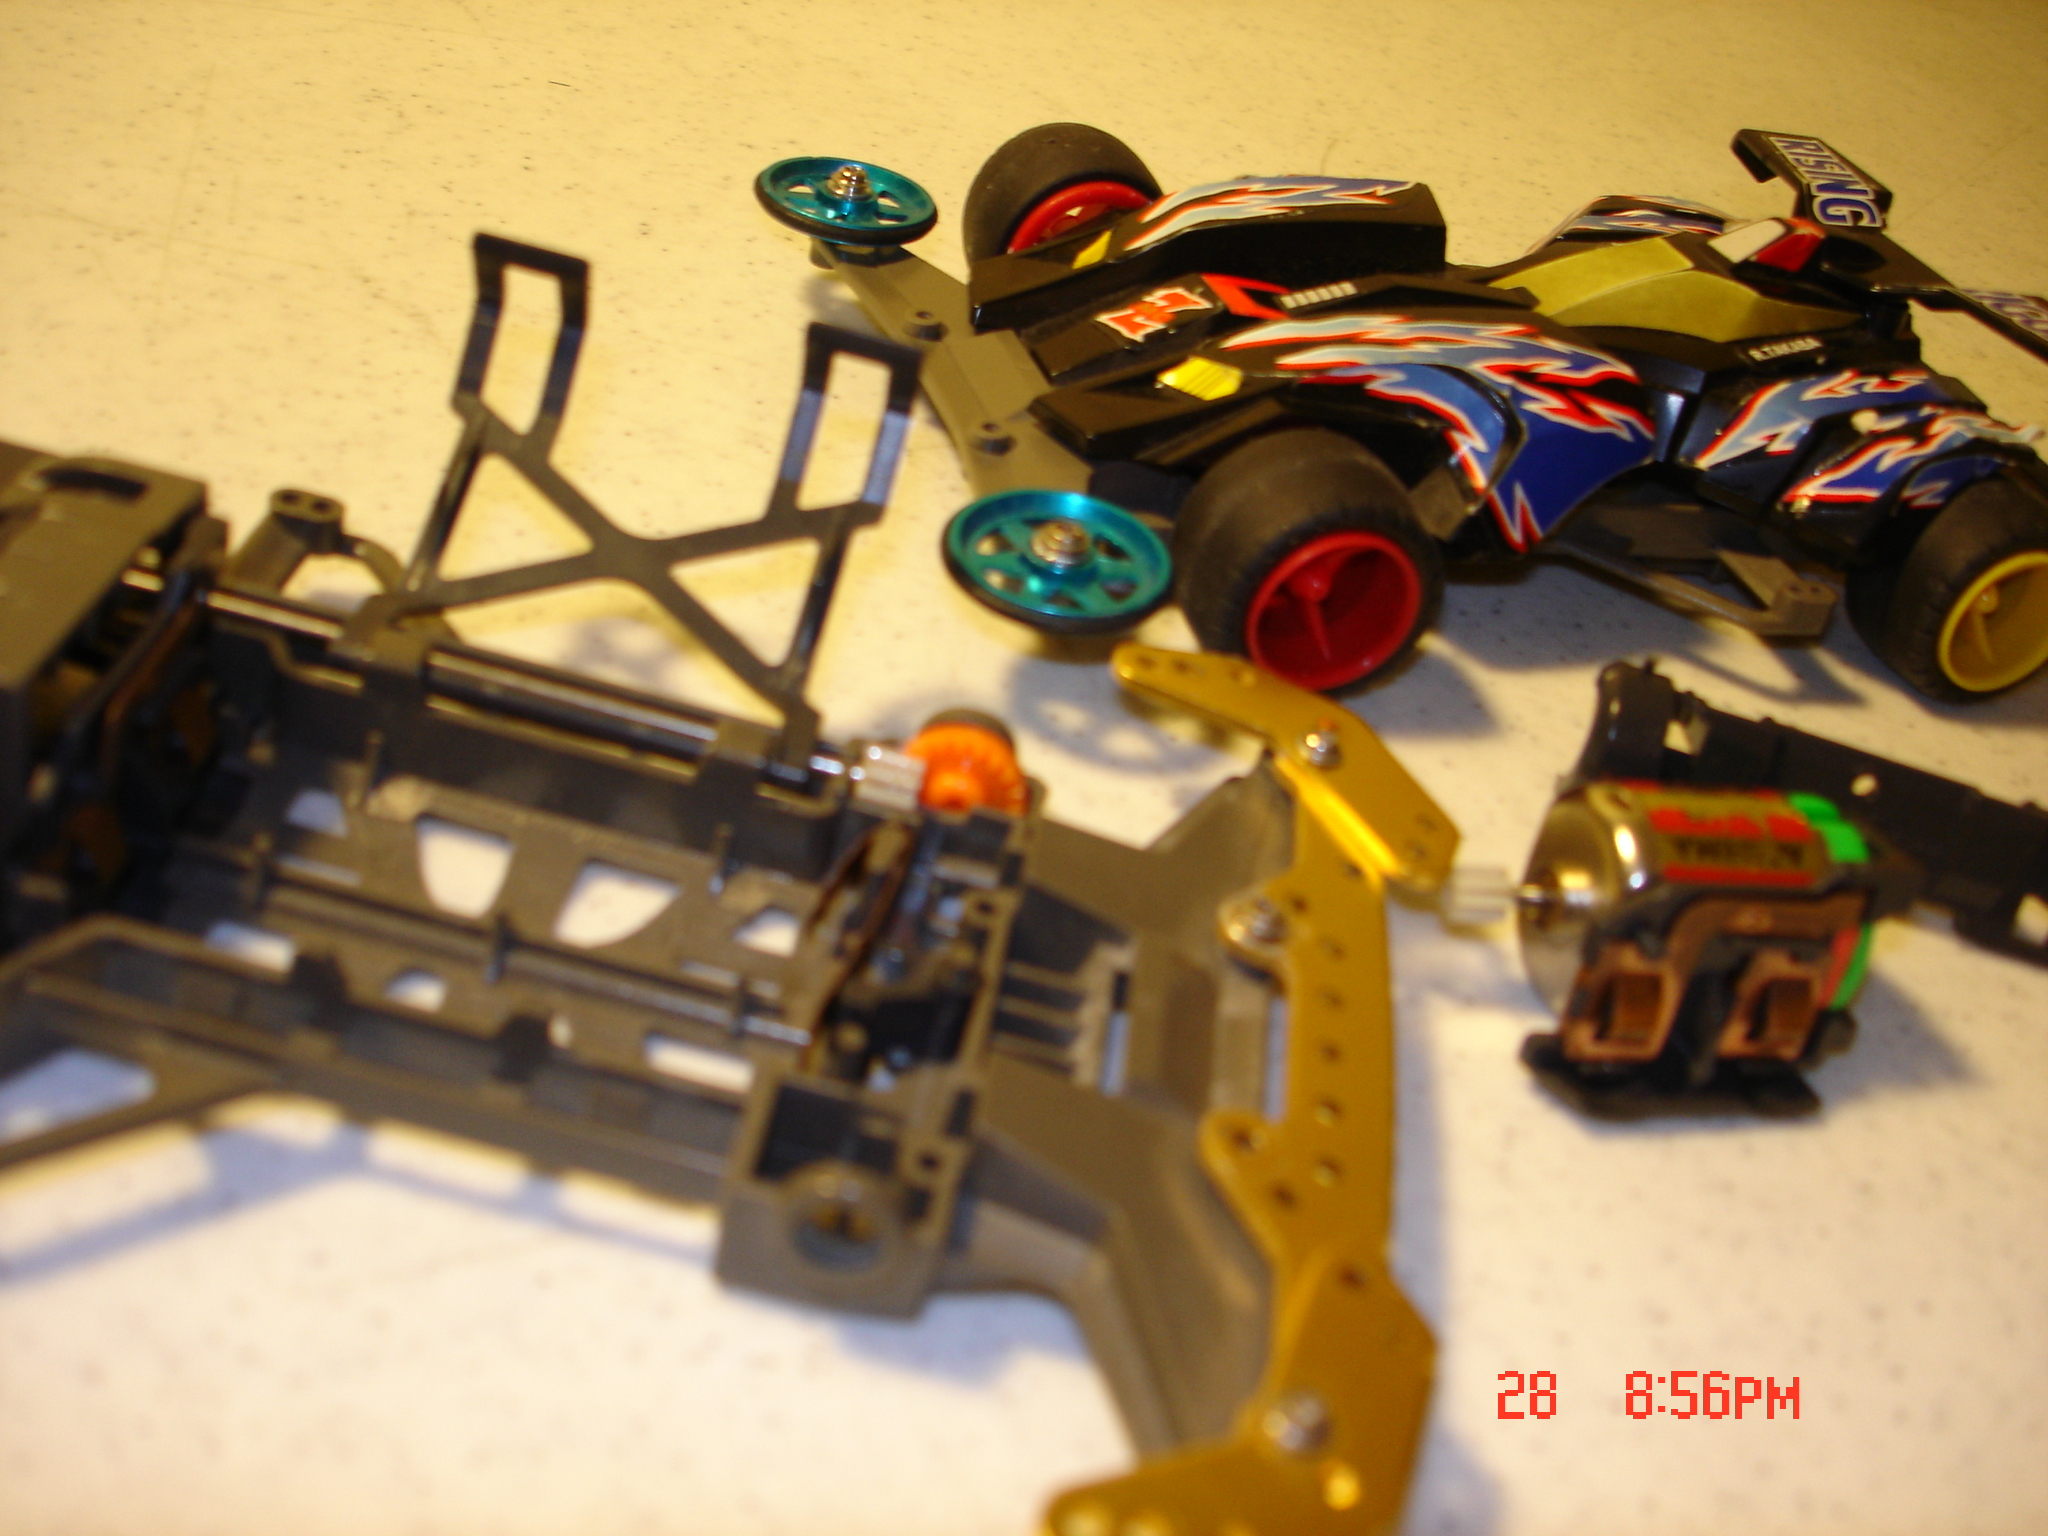 Tamiya Rc Cars For Sale Philippines